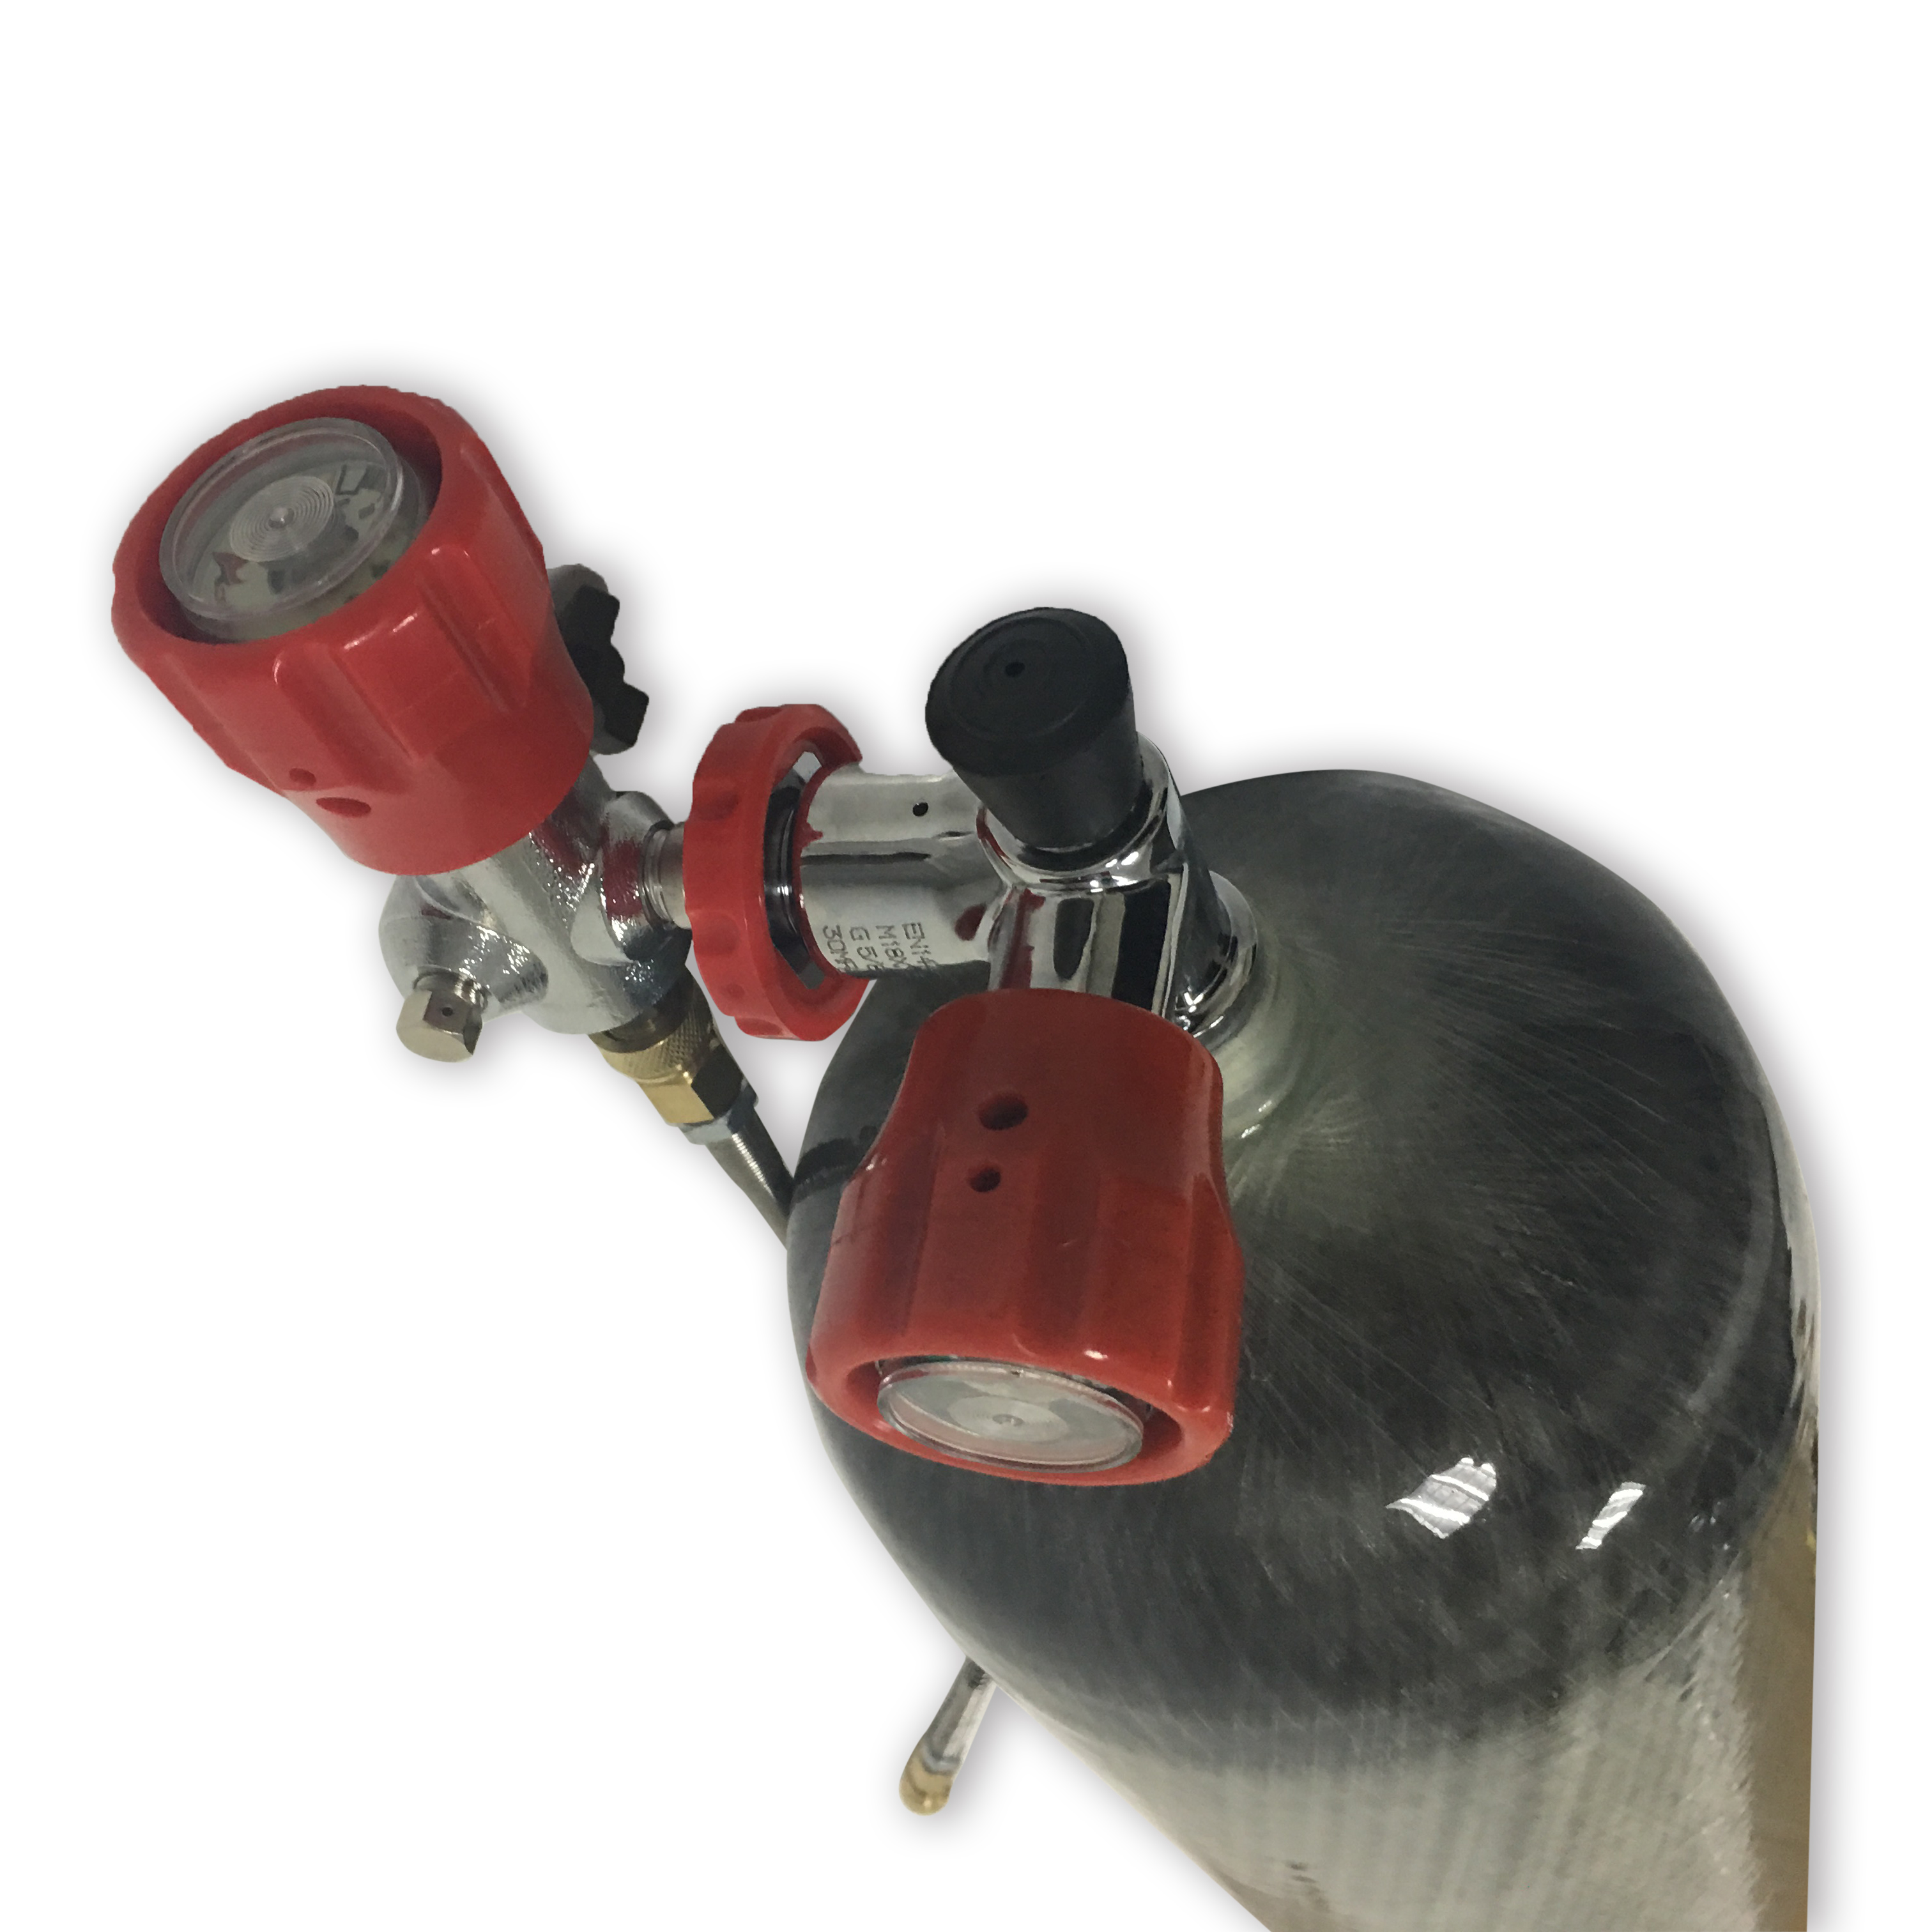 AC109101 hpa tank 4500psi scuba pcp rifle air carbon tank airforce condor valve diving cylinder mini scuba diving ACECARE hot in Fire Respirators from Security Protection